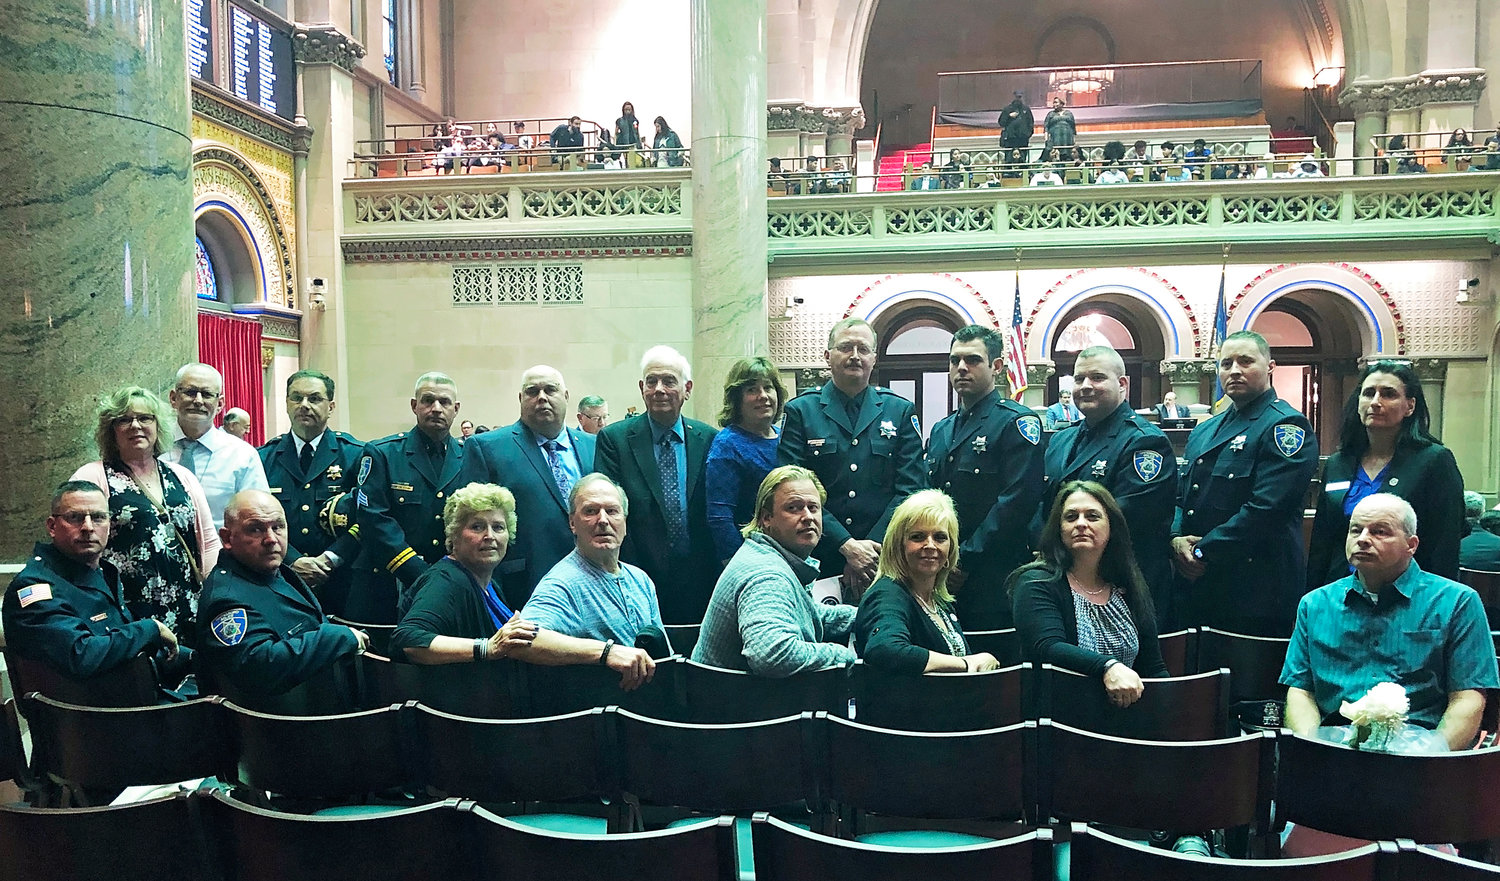 CROSSLEY HONORED — Family and friends of Whitesboro Patrolman Kevin F. Crossley gathered in Albany earlier this week as the officer's name was added on Tuesday to the New York State Police Officer's Memorial in the state capital.